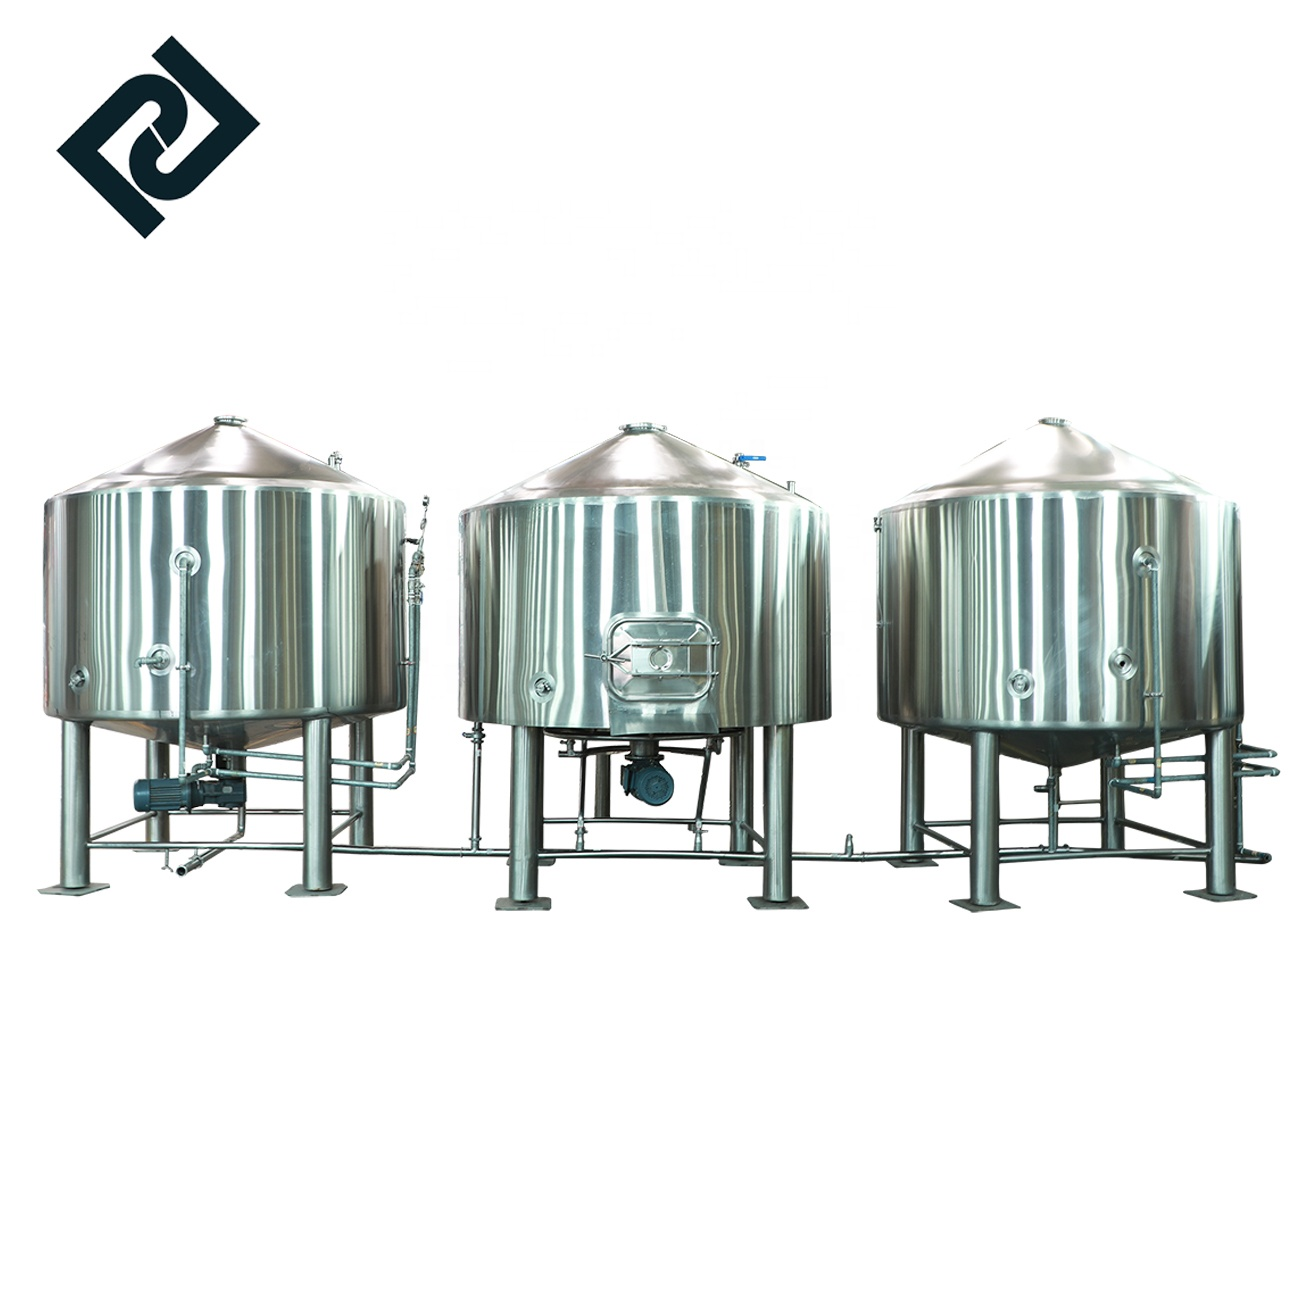 2020 Good Quality Gold Hotel Pub Beer Brewery Equipment - Complete beer brewery equipment/beer fermentation tank/beer machinery manufacturer – Pijiang